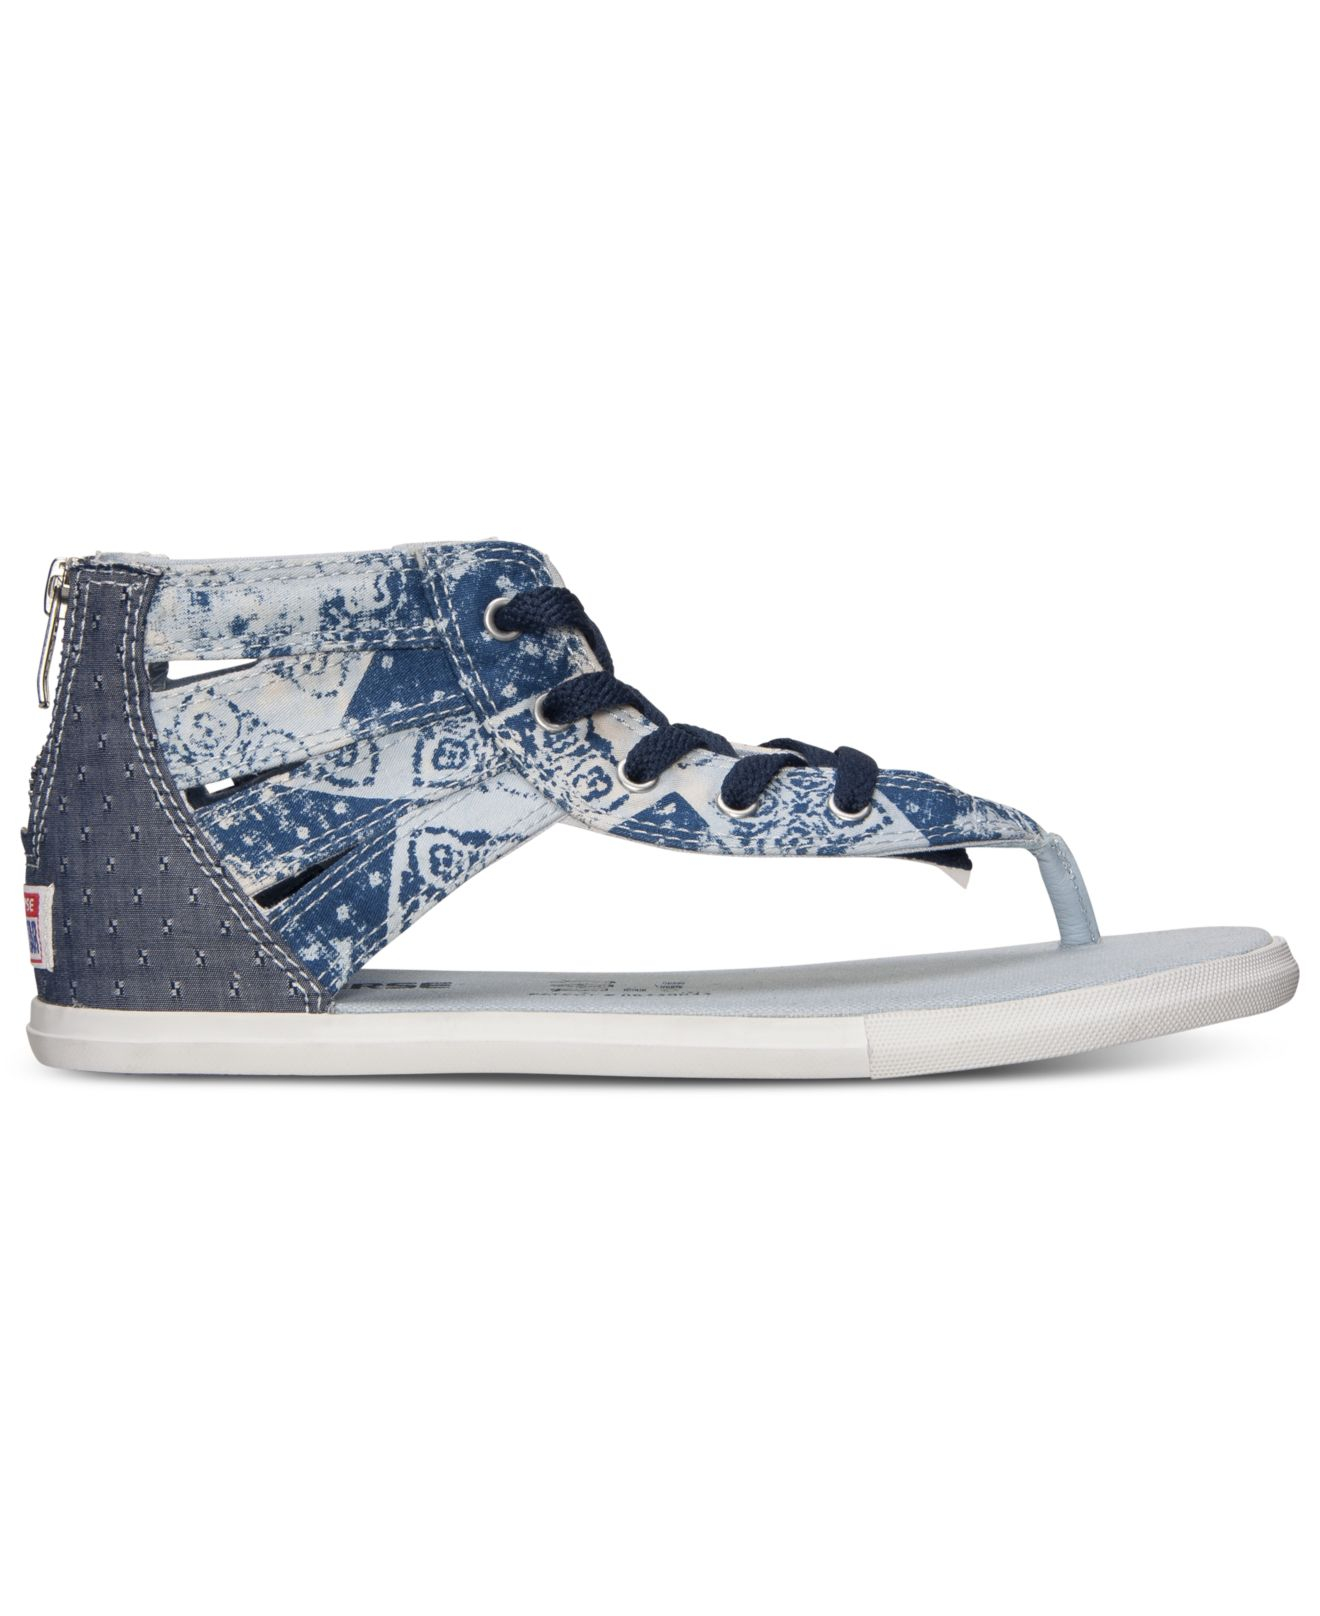 Lyst - Converse Women s Chuck Taylor Gladiator Thong Sandals From ... 652dc33b1